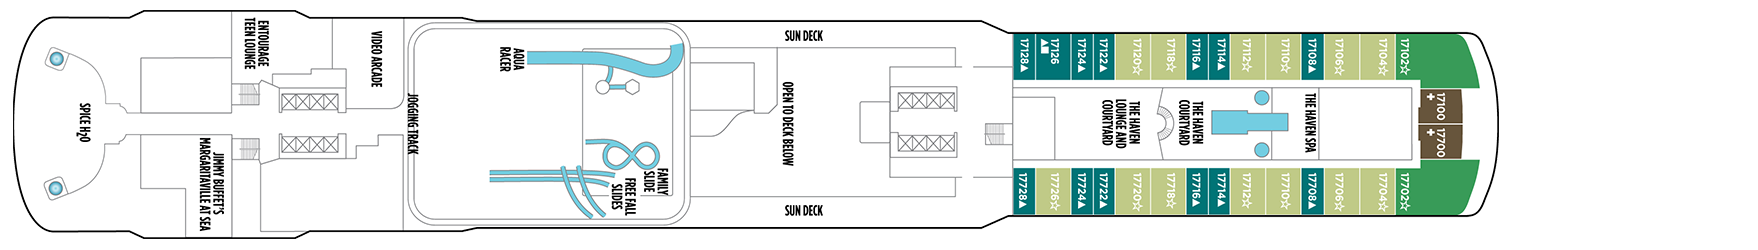 Norwegian Cruise Line Norwegian Escape Deck Plans Deck 17.png